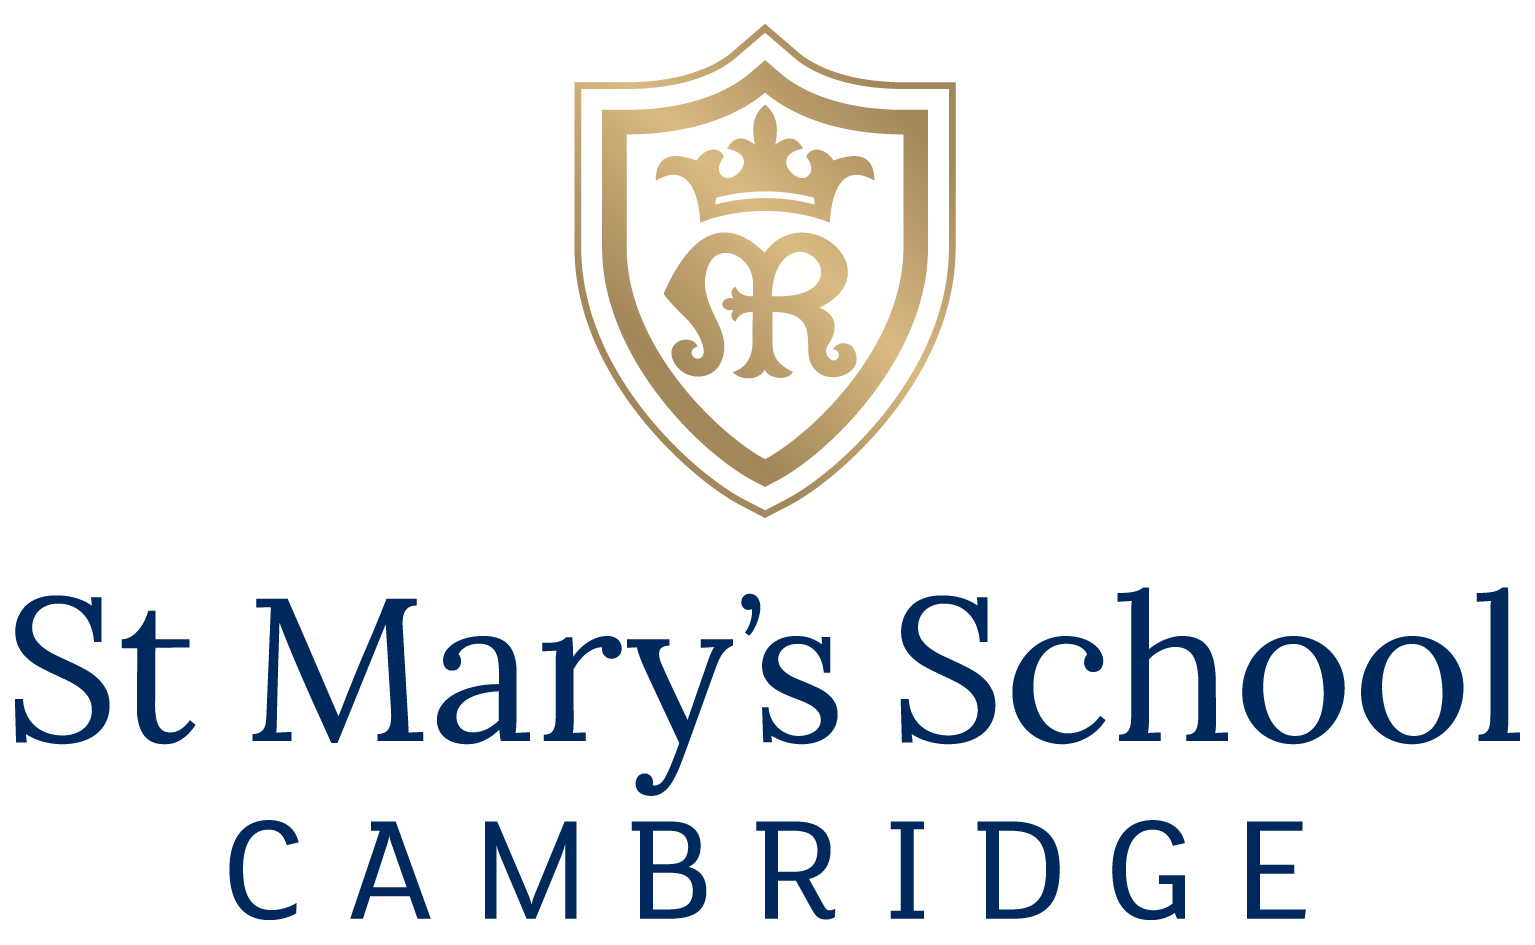 St Marys School Cambridge